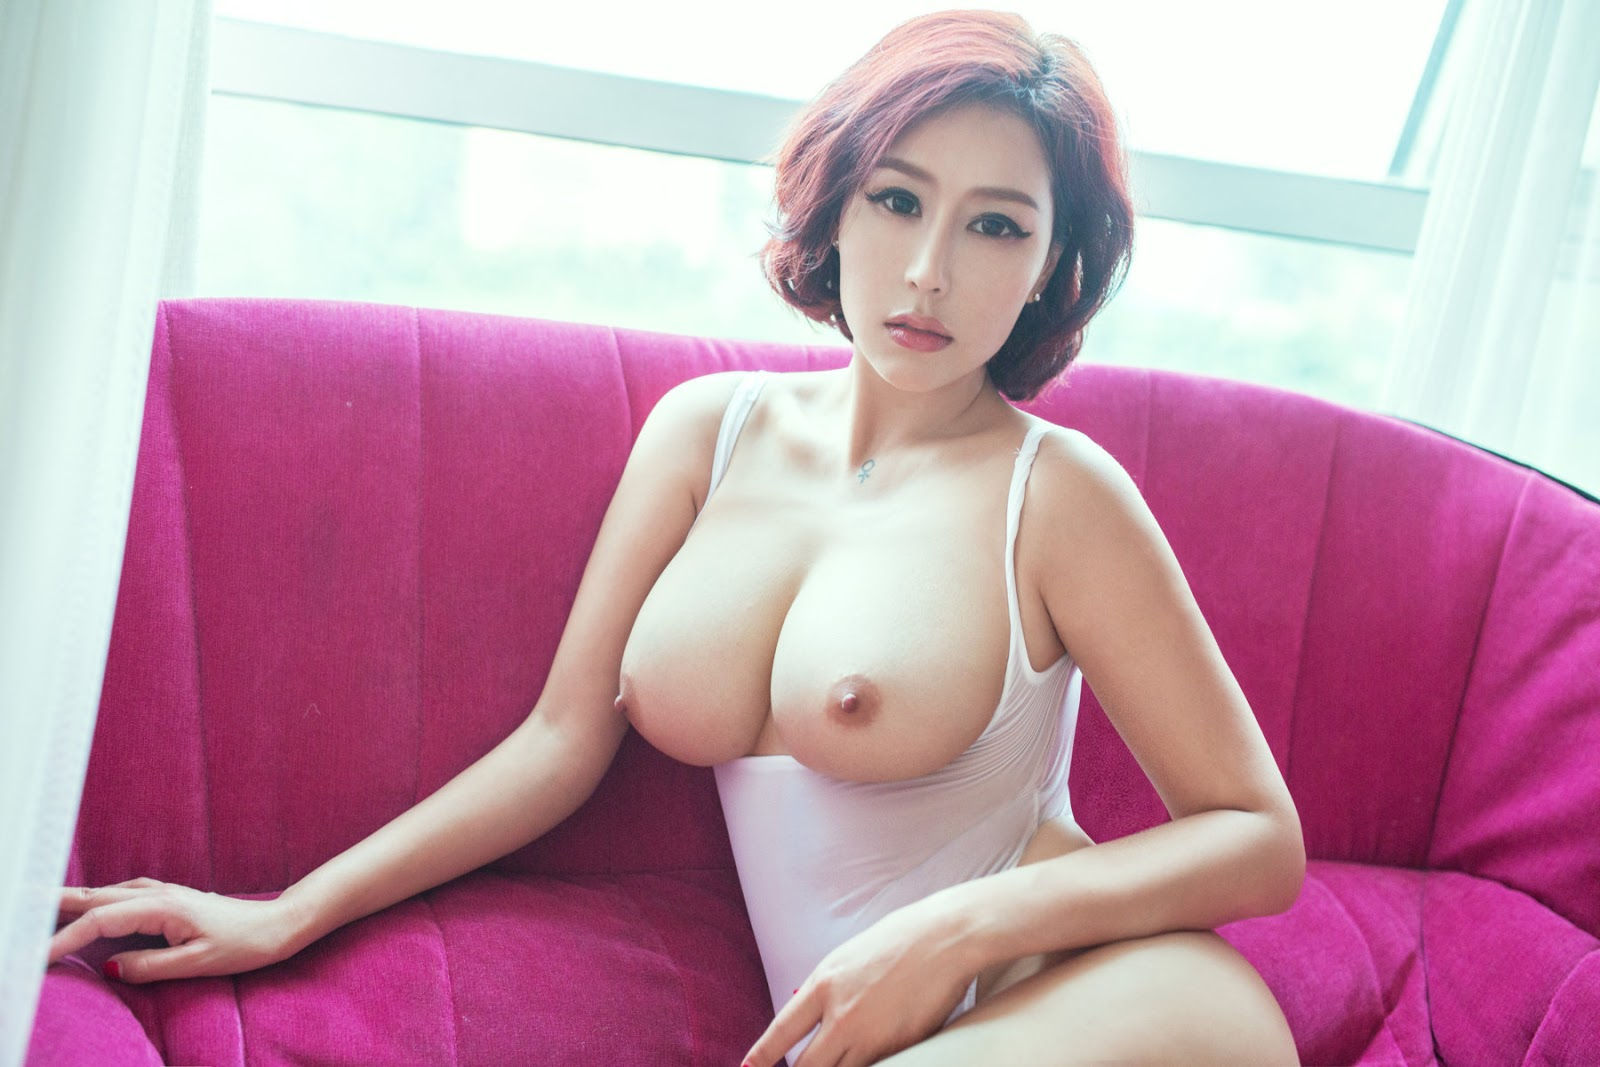 chen-hot-nude-hot-girl-with-bare-pussy